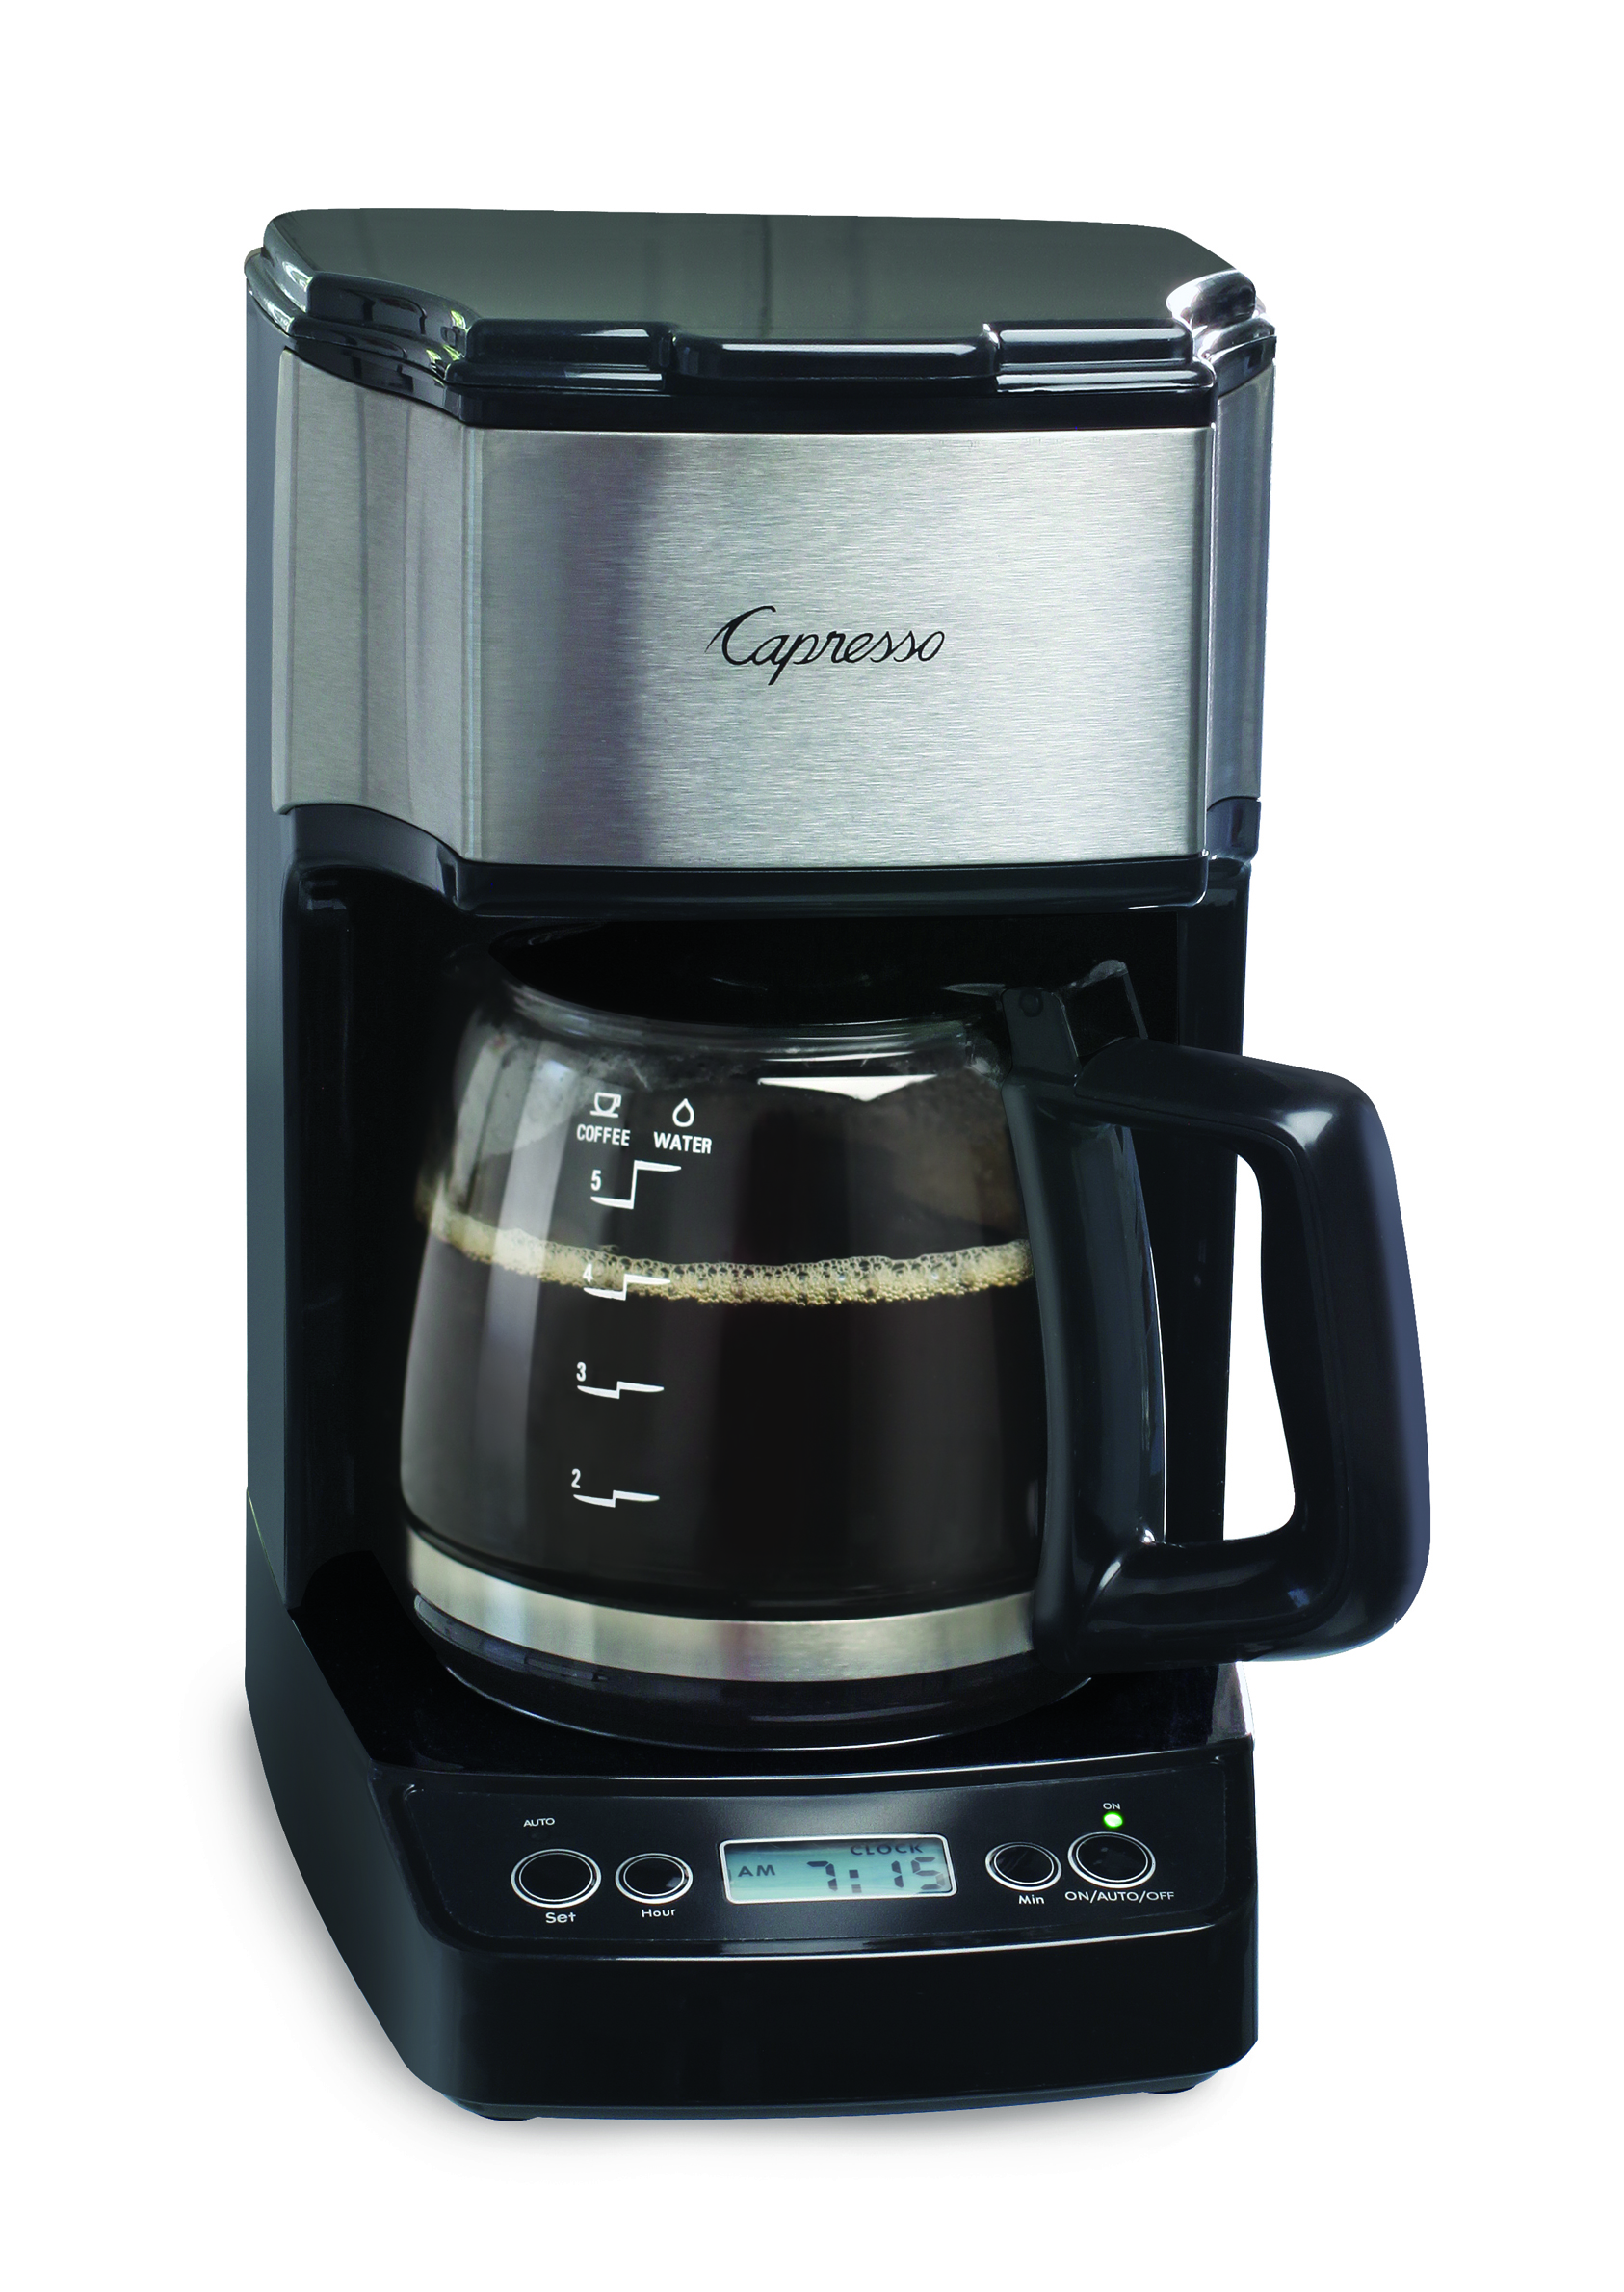 New Capresso Mini Drip 5-Cup Programmable Coffee Maker Kitchenware News & Housewares ...